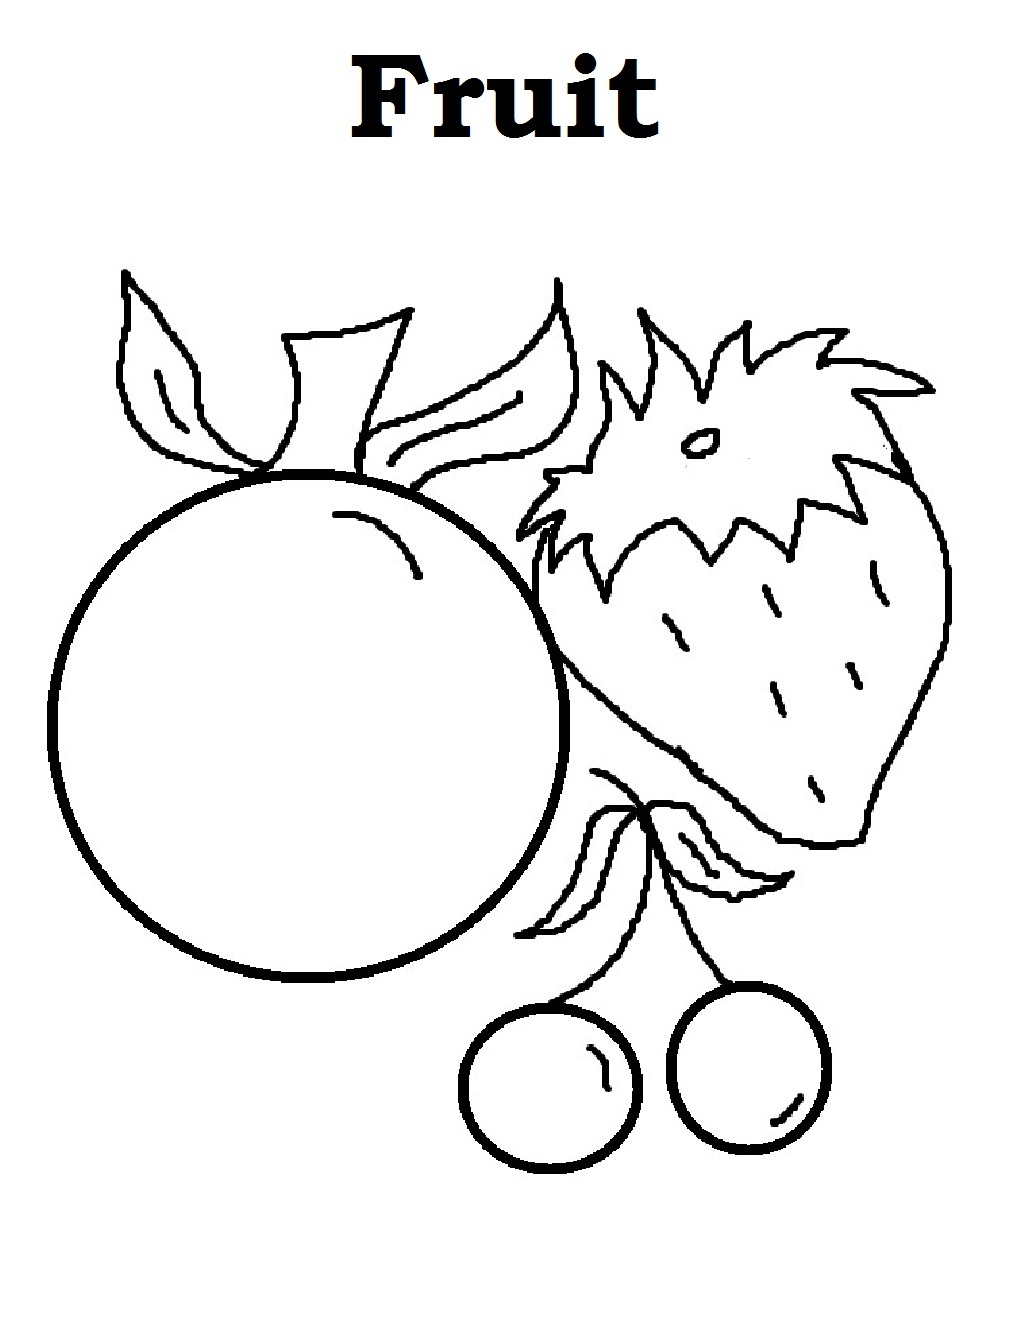 frutas coloring pages - photo#14